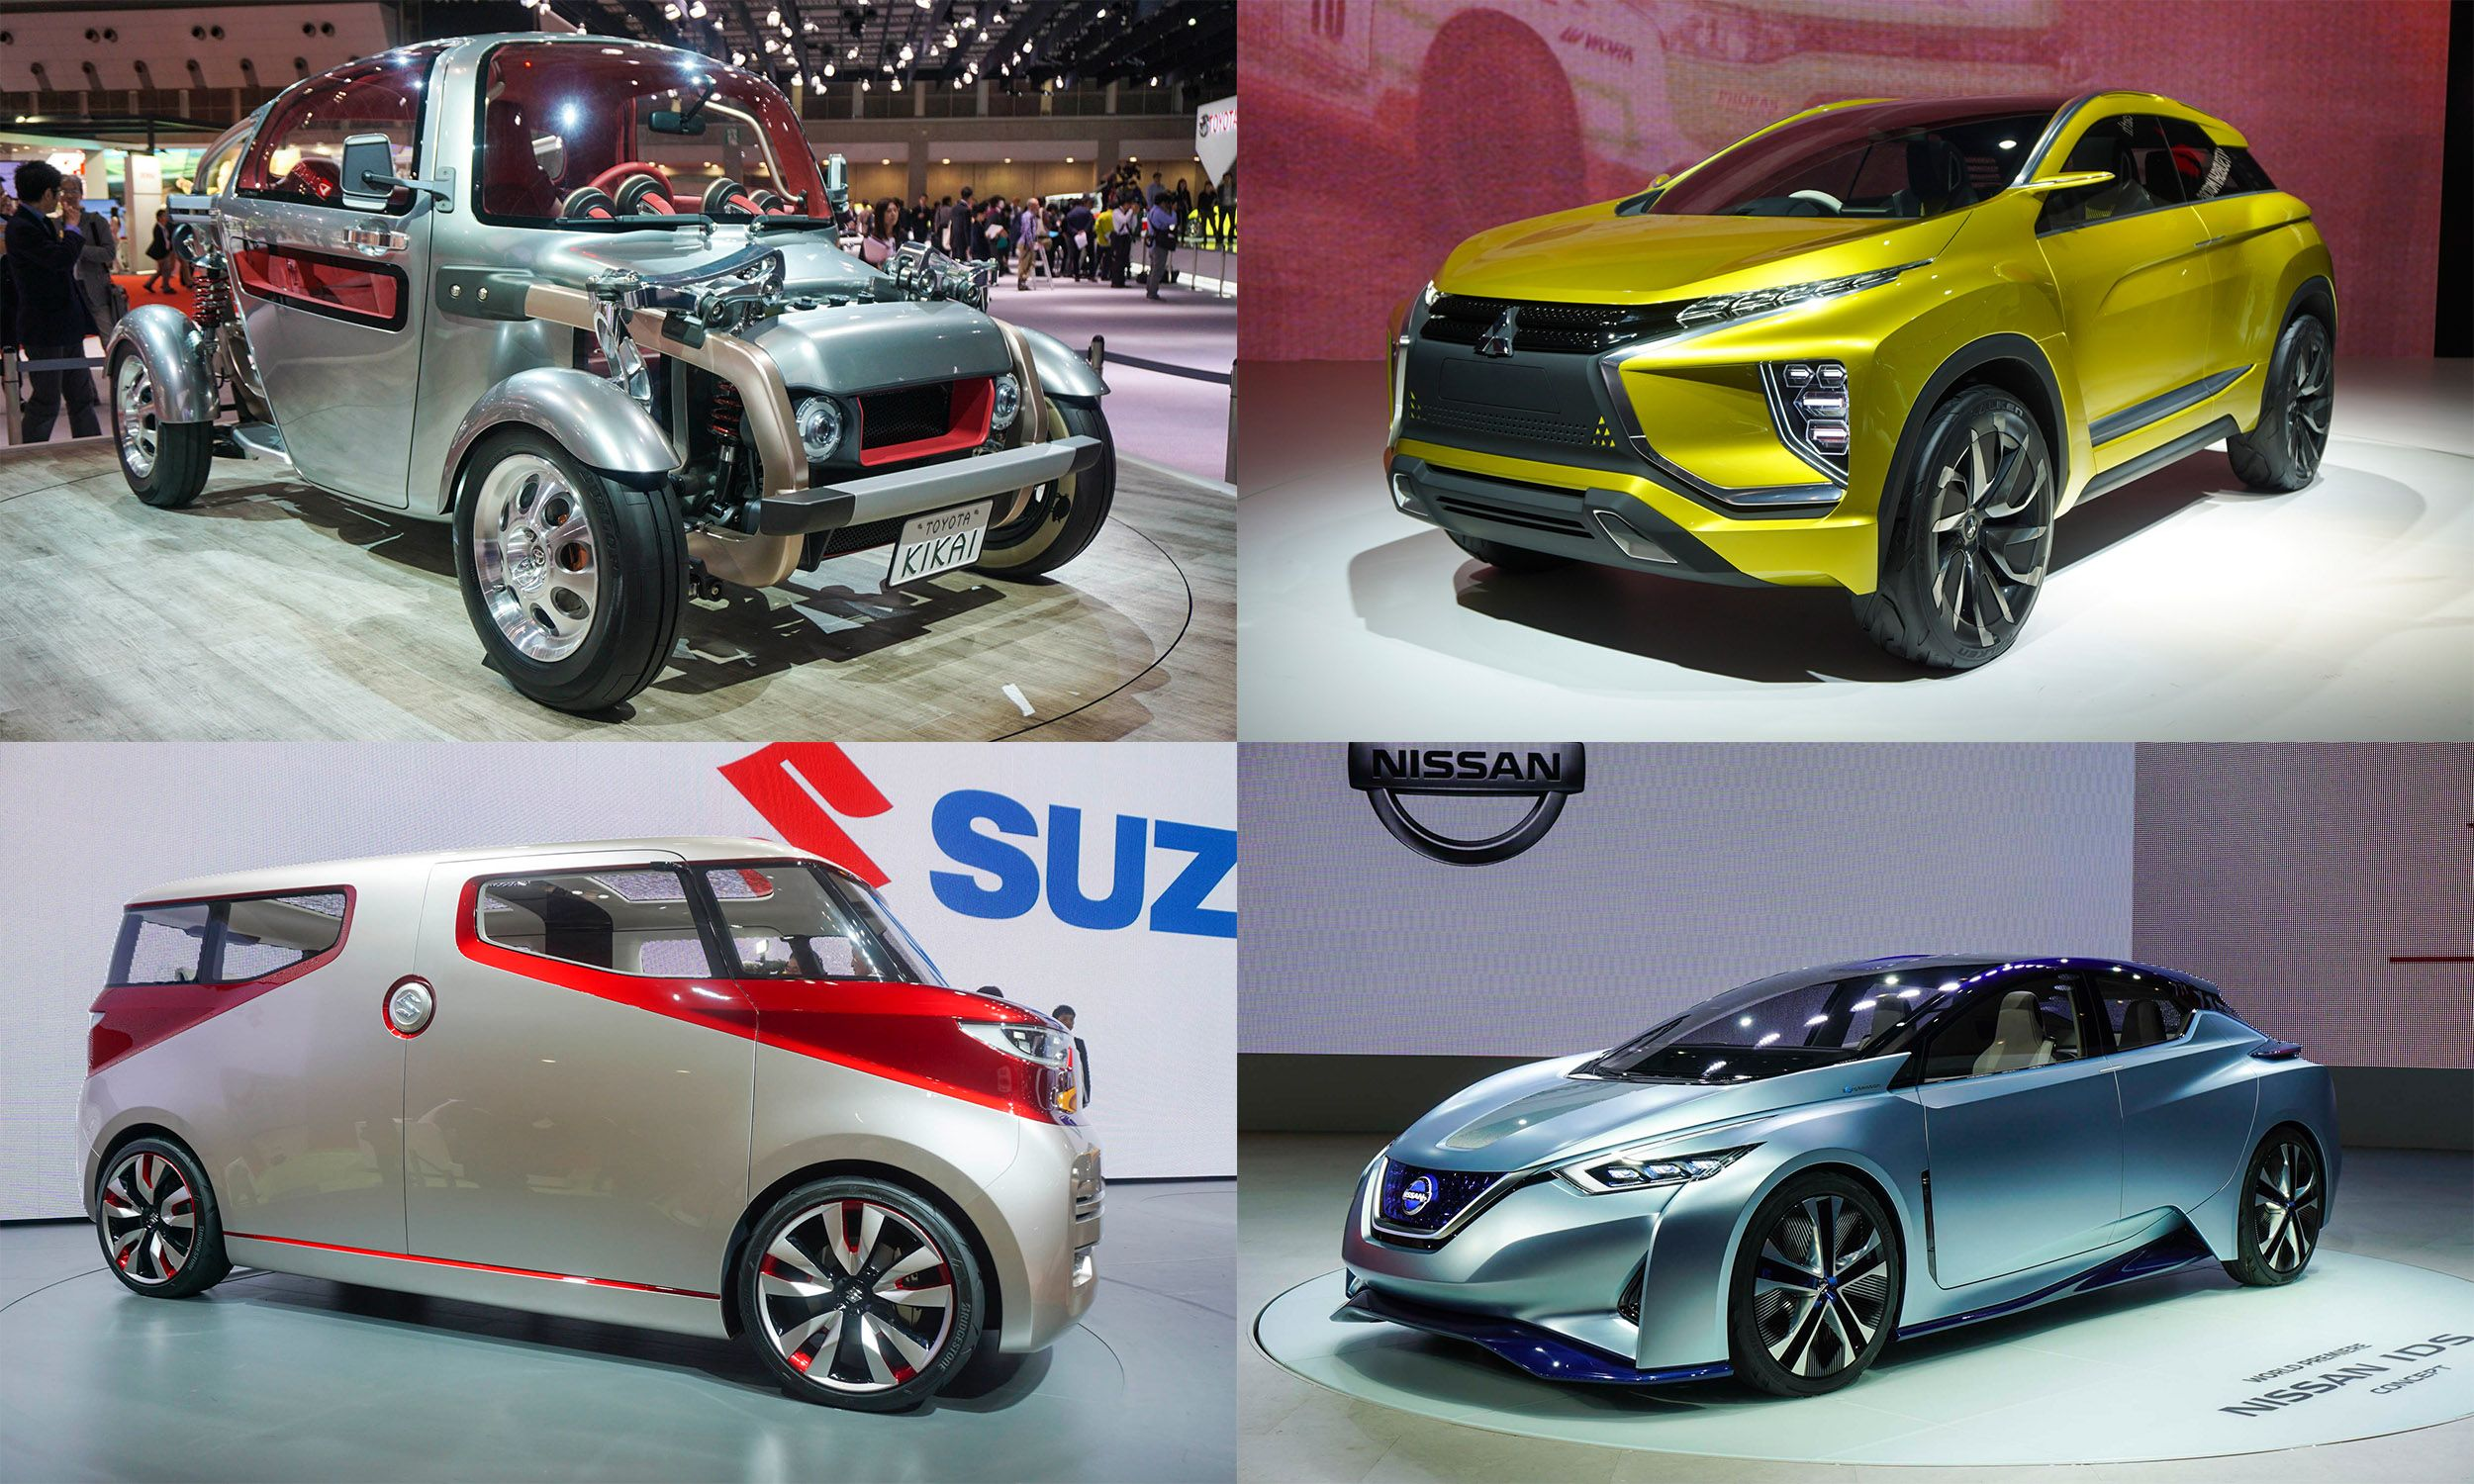 2015 Tokyo Motor Show: Best Concept Cars   Concept cars ...